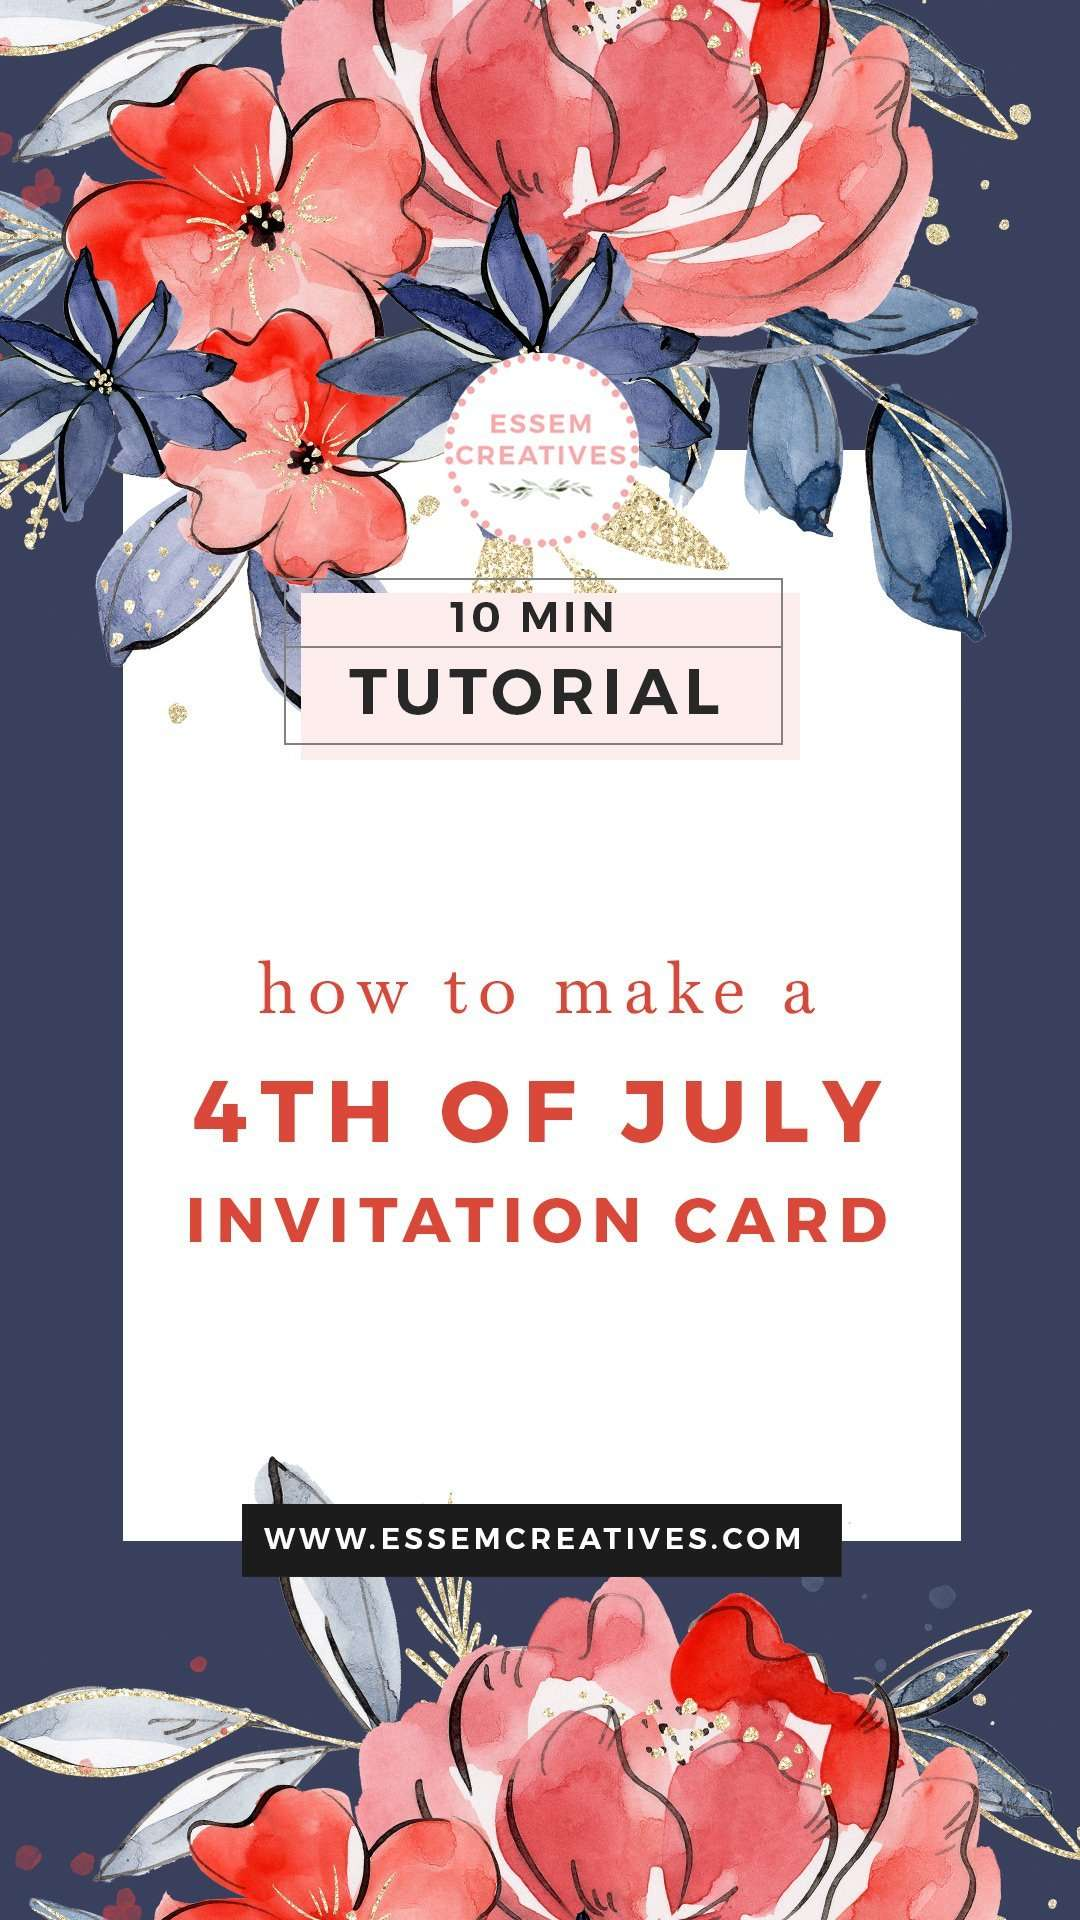 How to Make a 4th of July Invitation Card (with Wording) - Floral Watercolor | Click to see how you can create a professional looking invitation that your friends & family love and admire! >> #4thofjuly #fourthofjuly